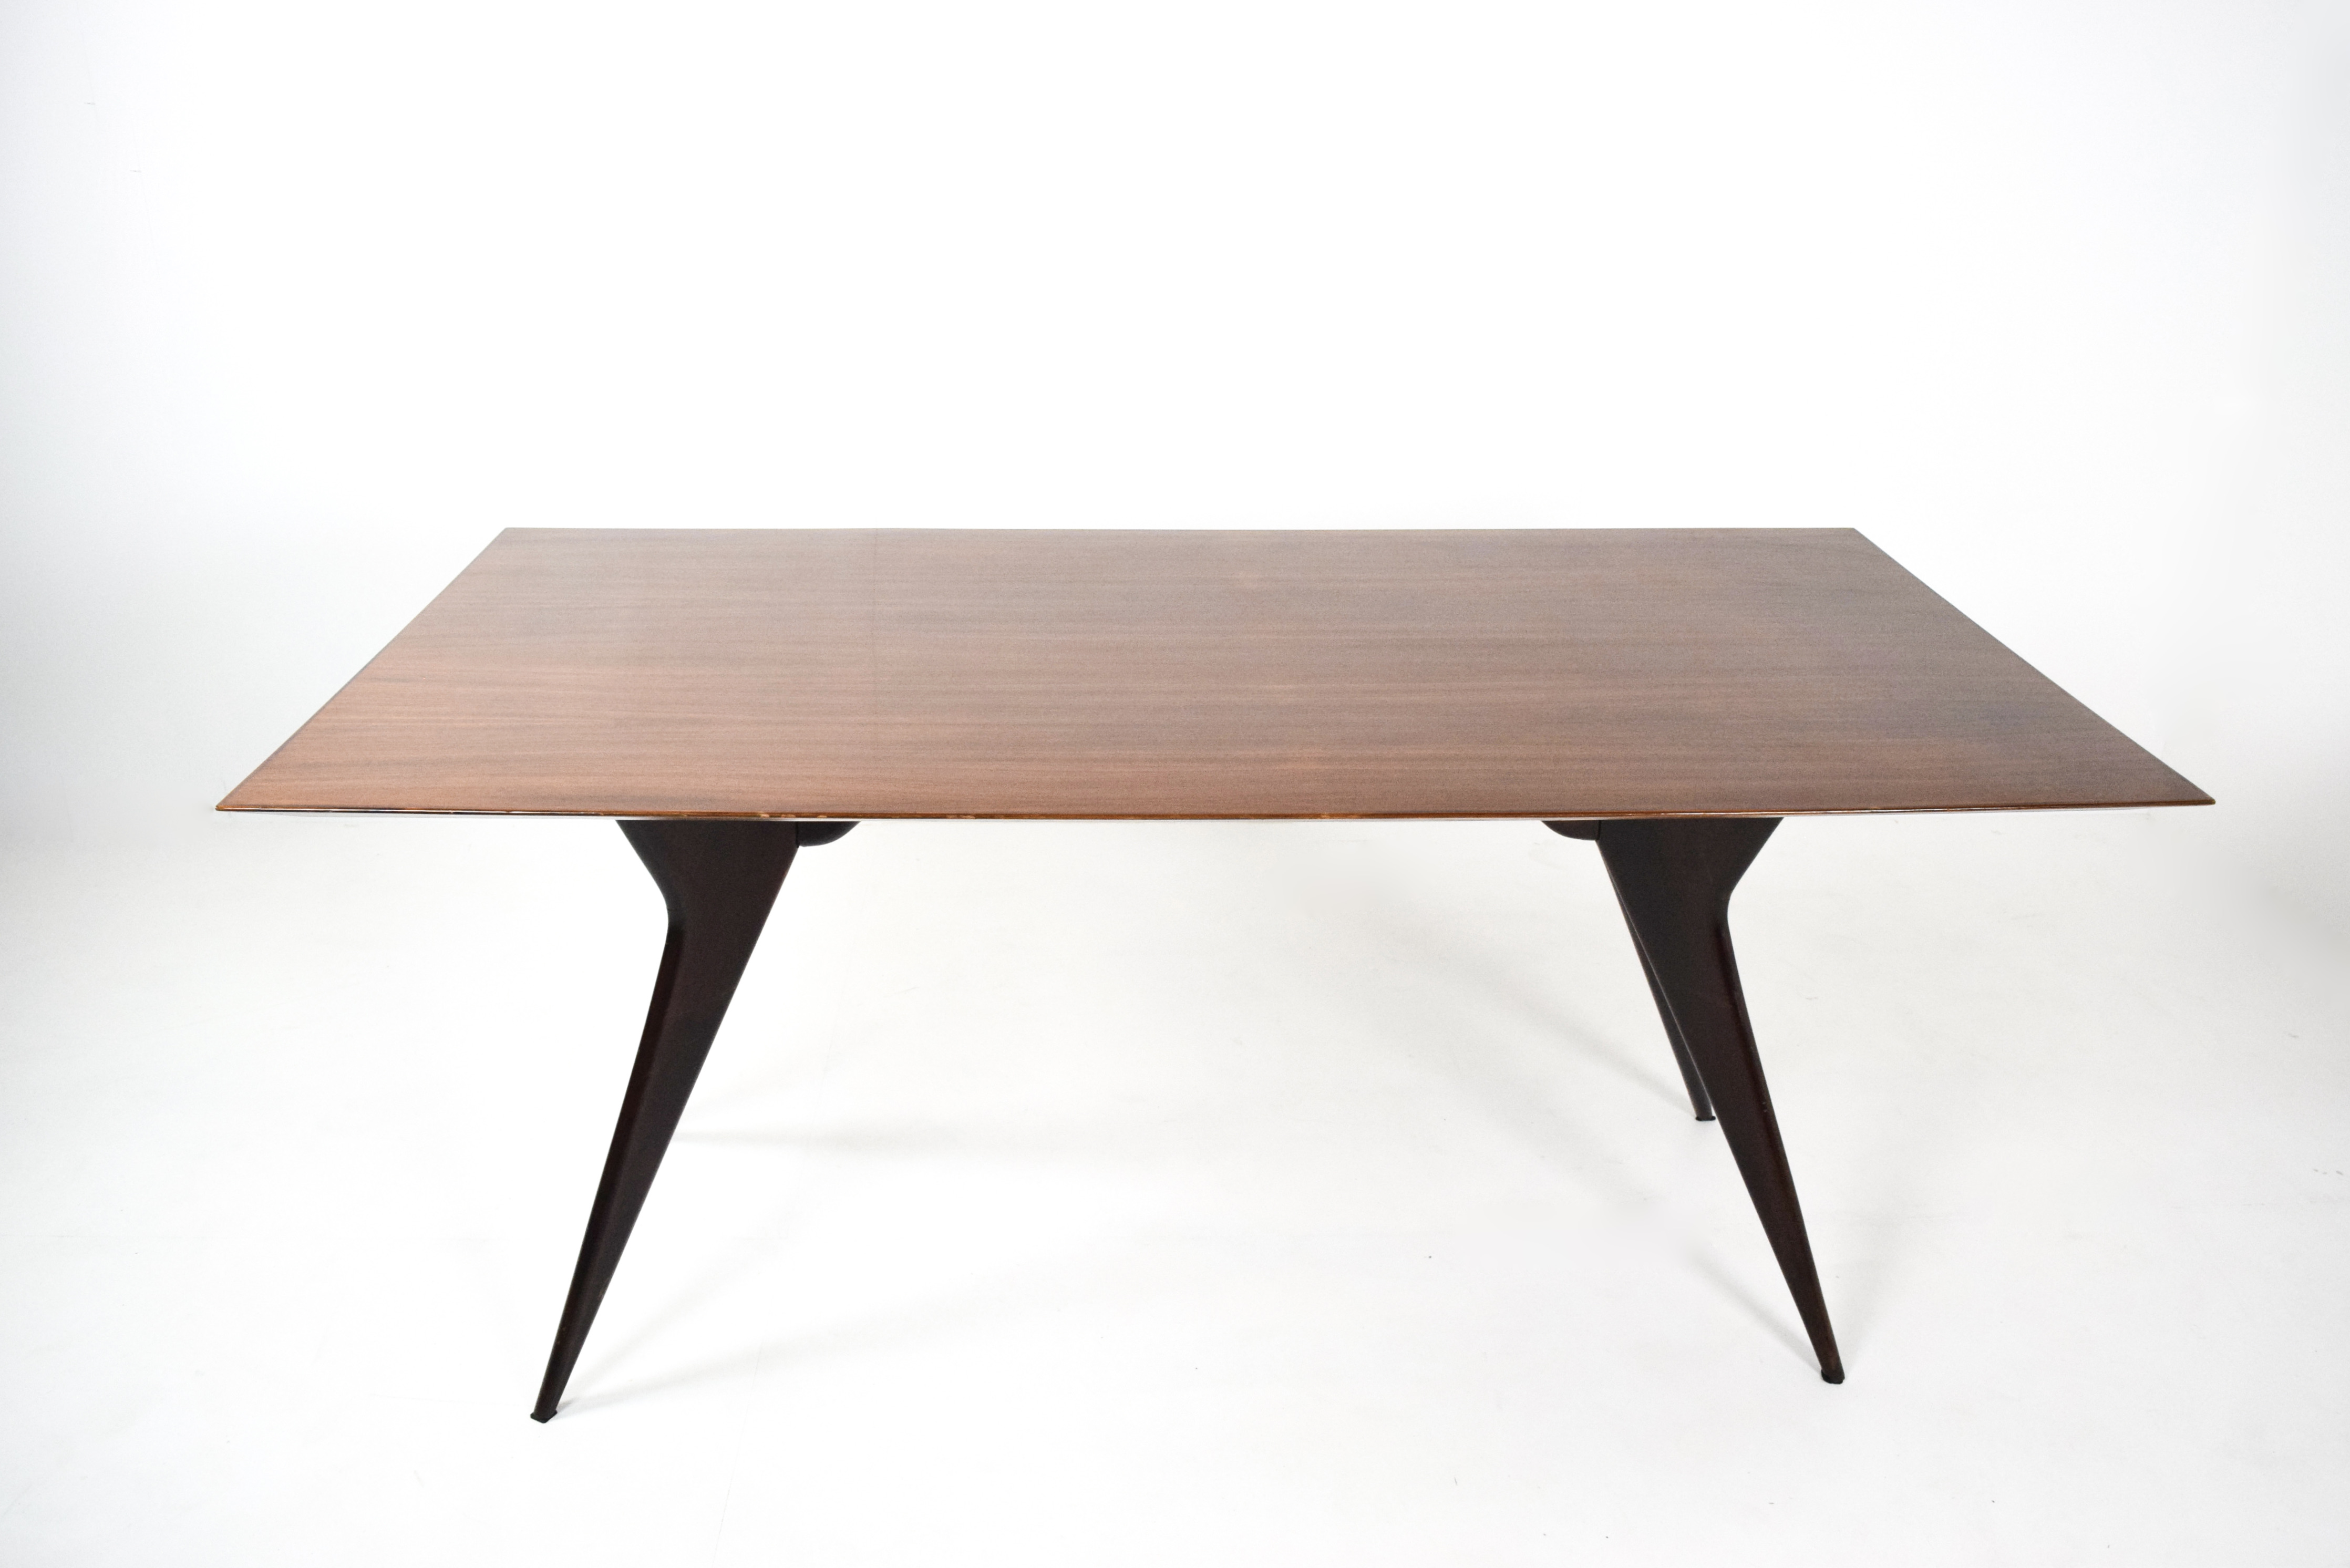 Top view Ico Parisi Table in Rosewood for MIM Roma